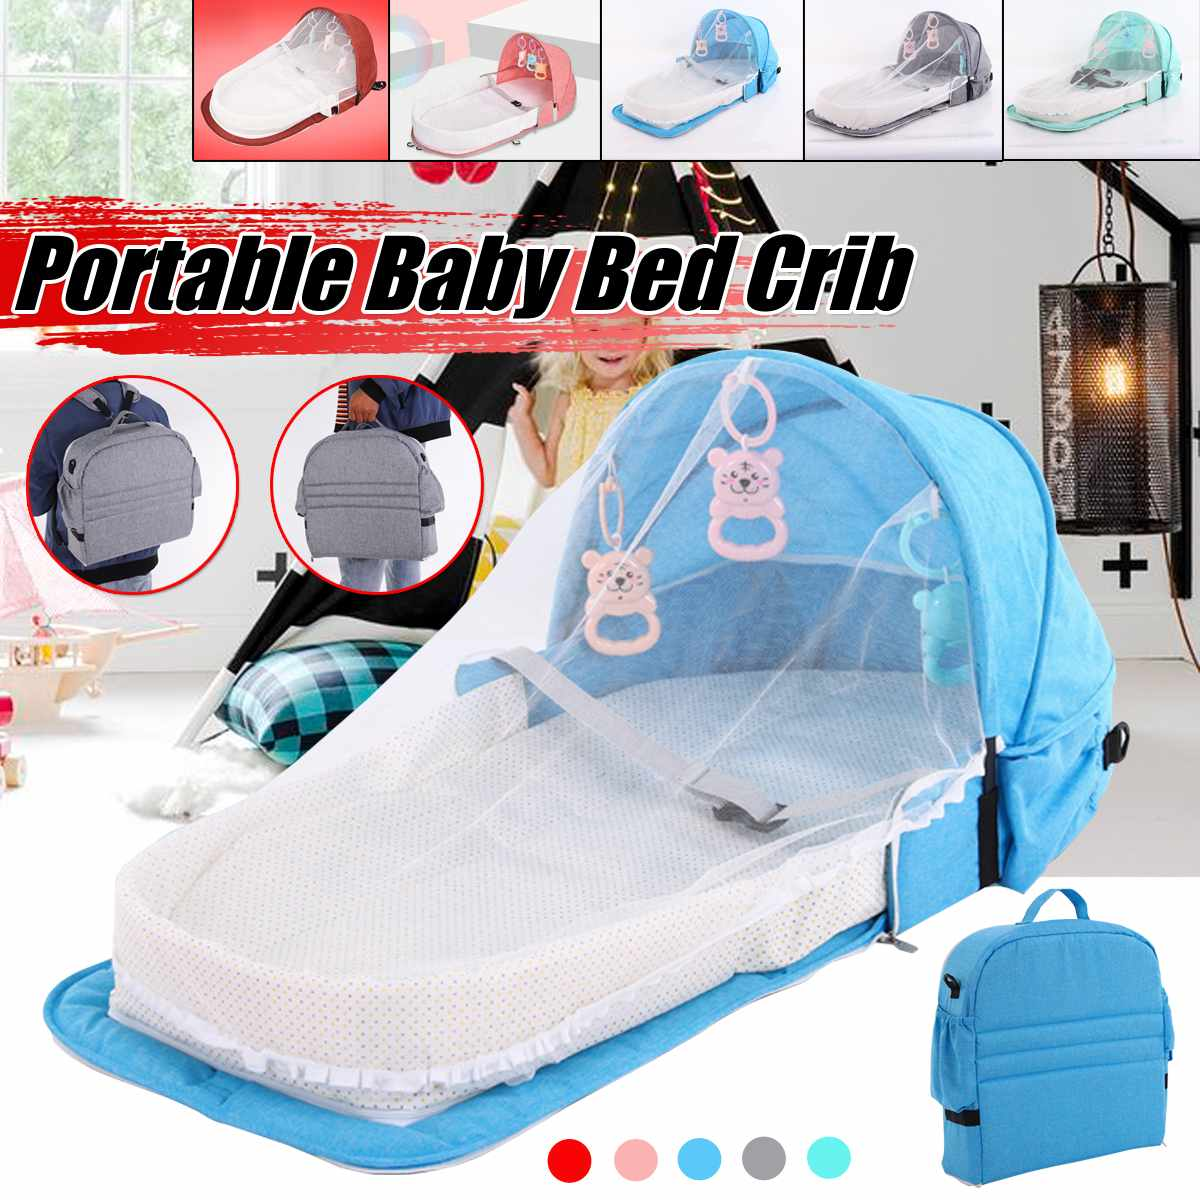 Portable Foldable Baby Bed Multi-function Mummy Bag Travel Baby Crib Cot With Mosquito Net Breathable Infant Sleeping Basket